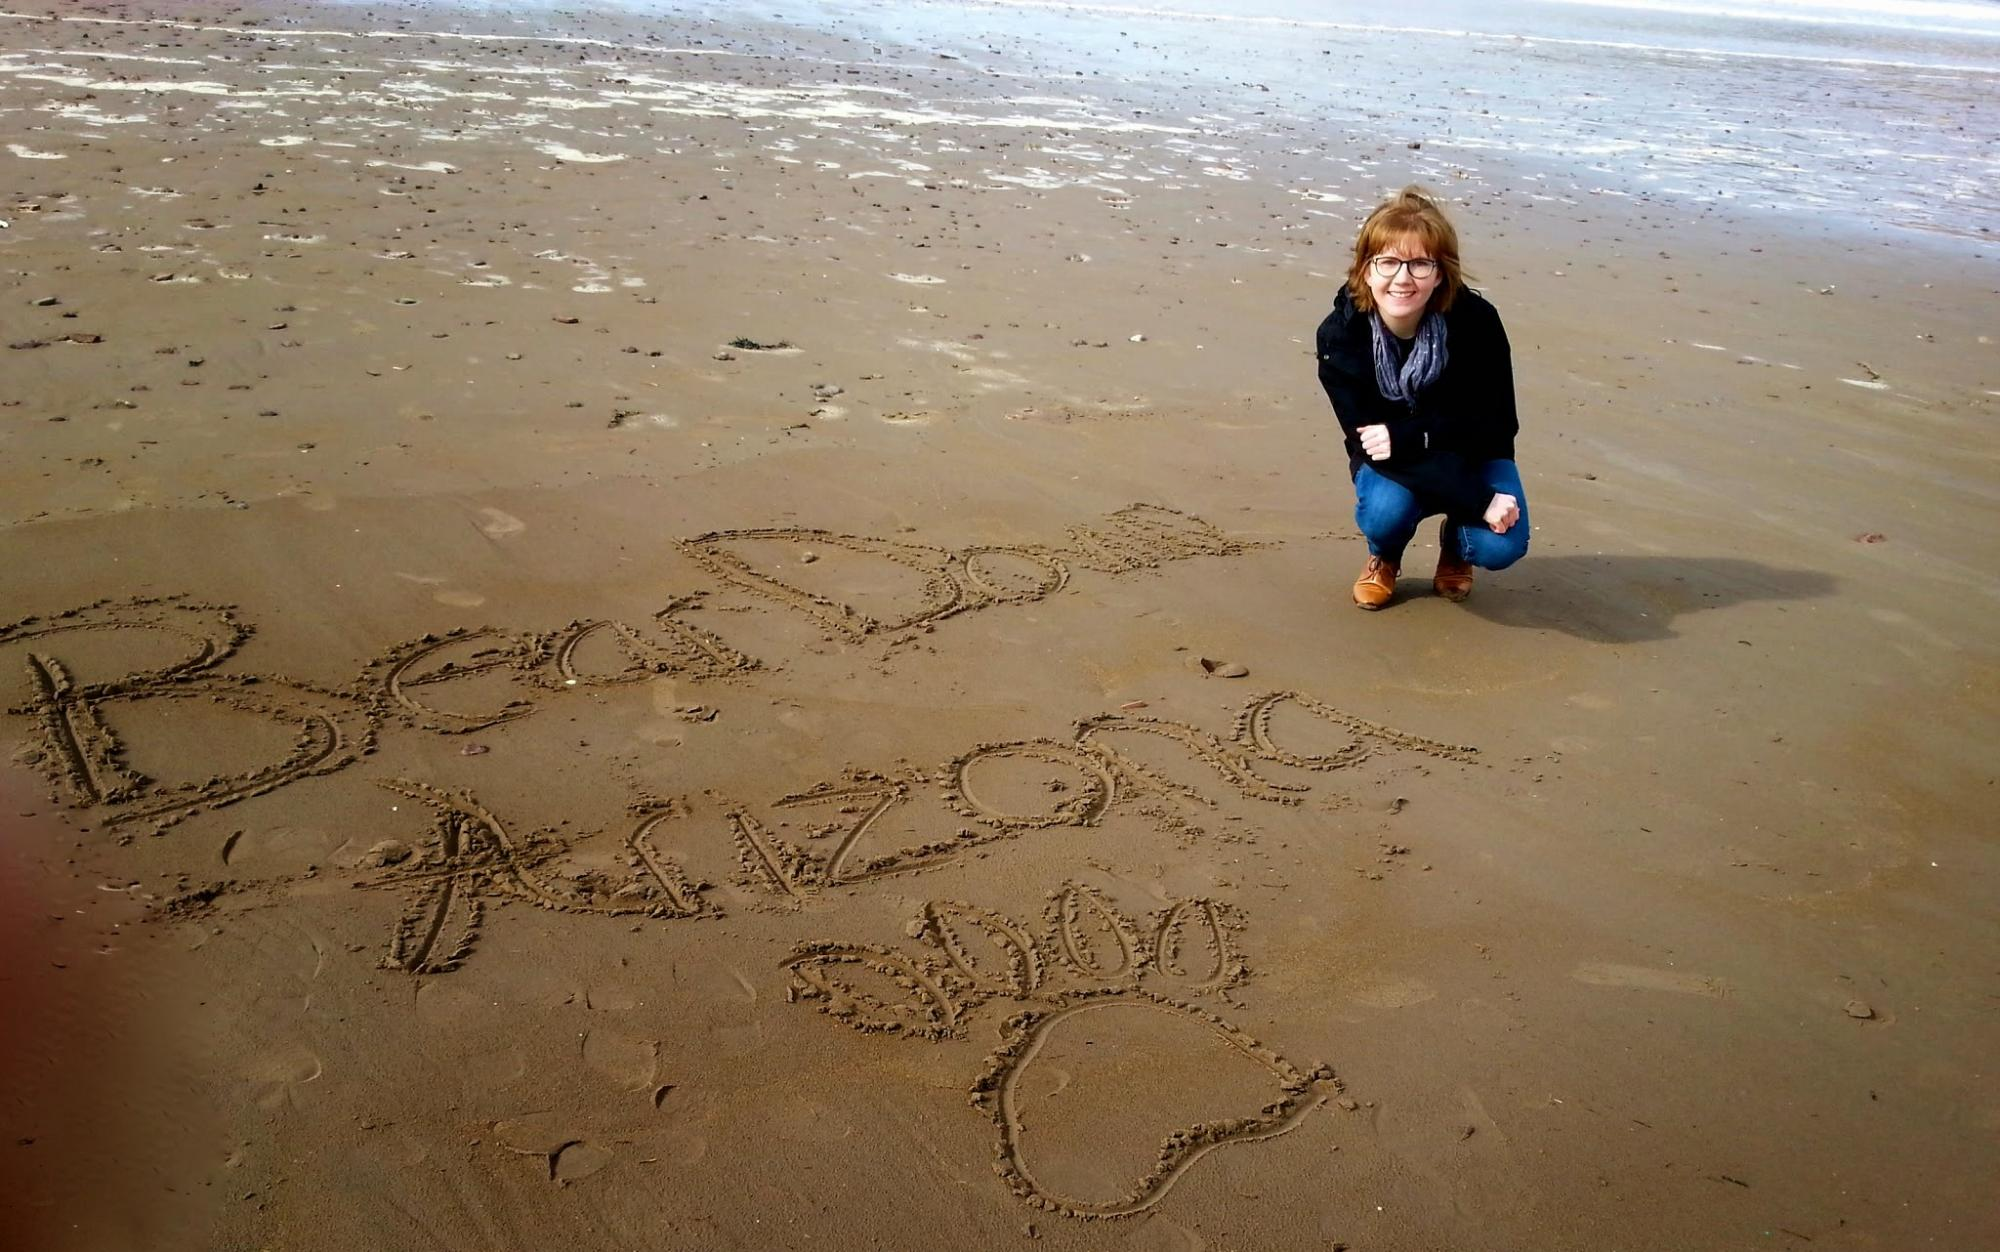 Katlyn Campbel, who graduated in 2015 with a degree in public health, poses on Inch Beach in County Kerry, Ireland.